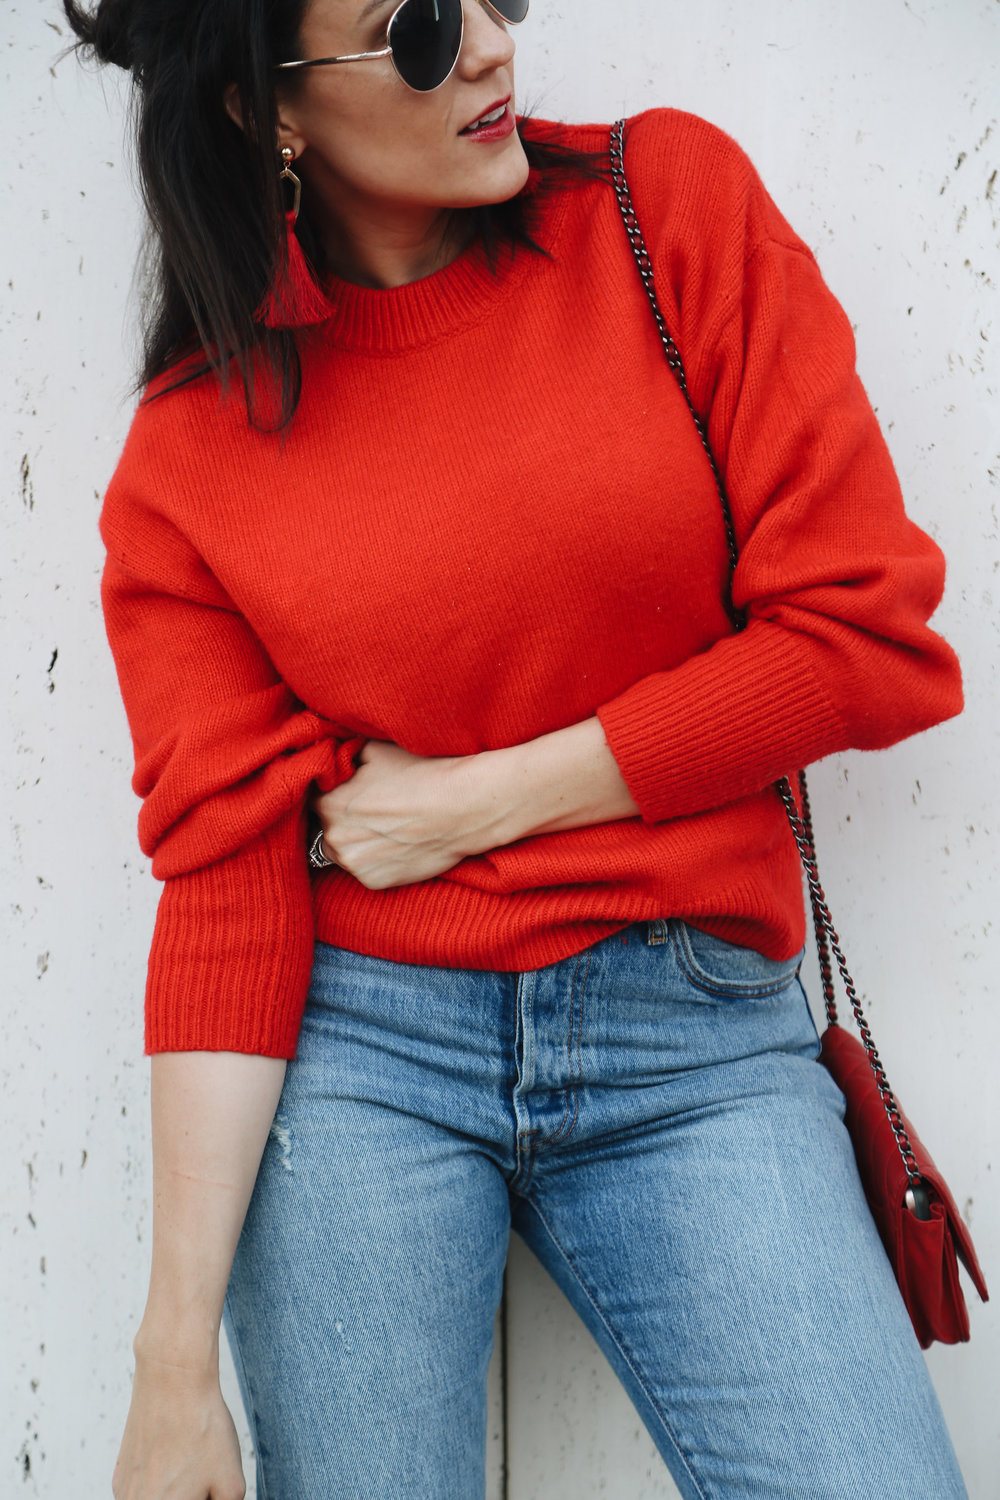 H&M red sweater3.jpg